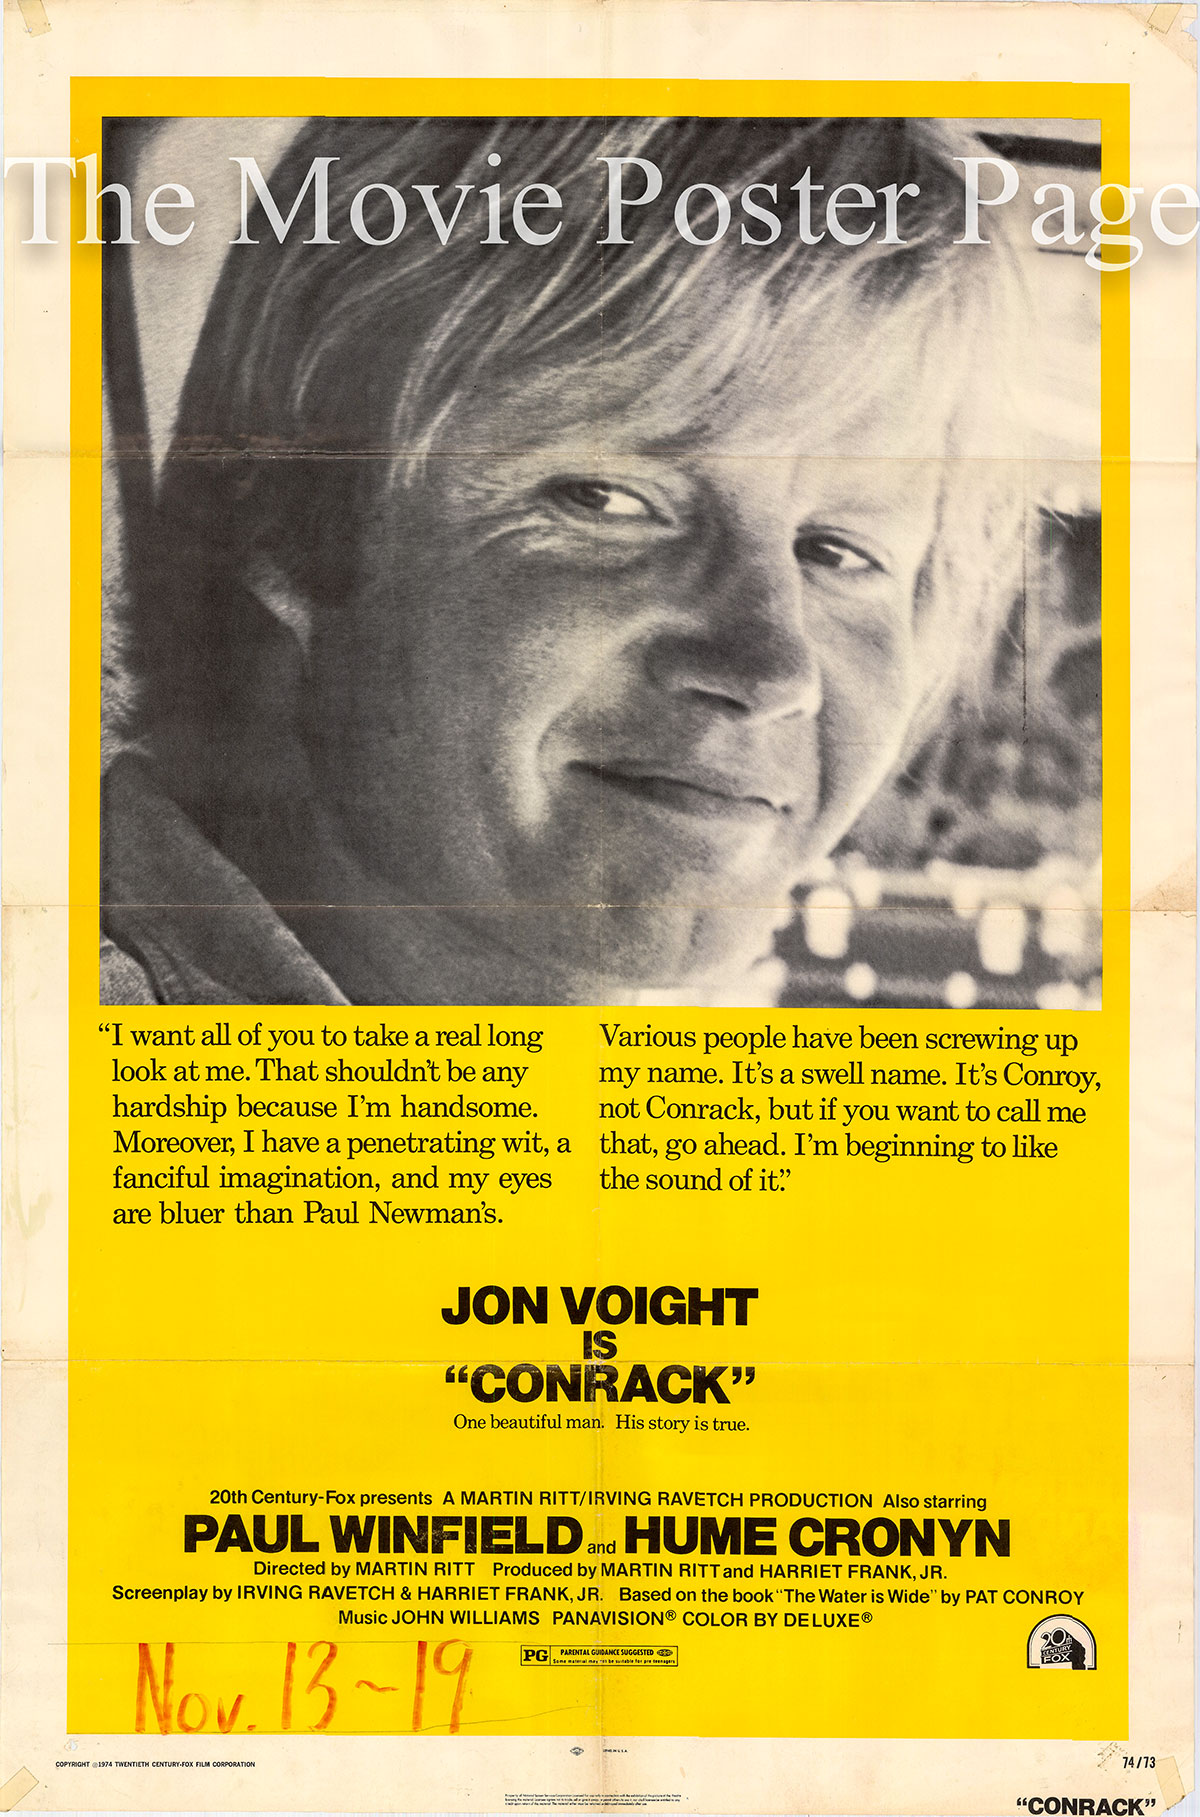 Pictured is a US one-sheet poster for the 1974 Martin Ritt film Conrack starring Jon Voight.